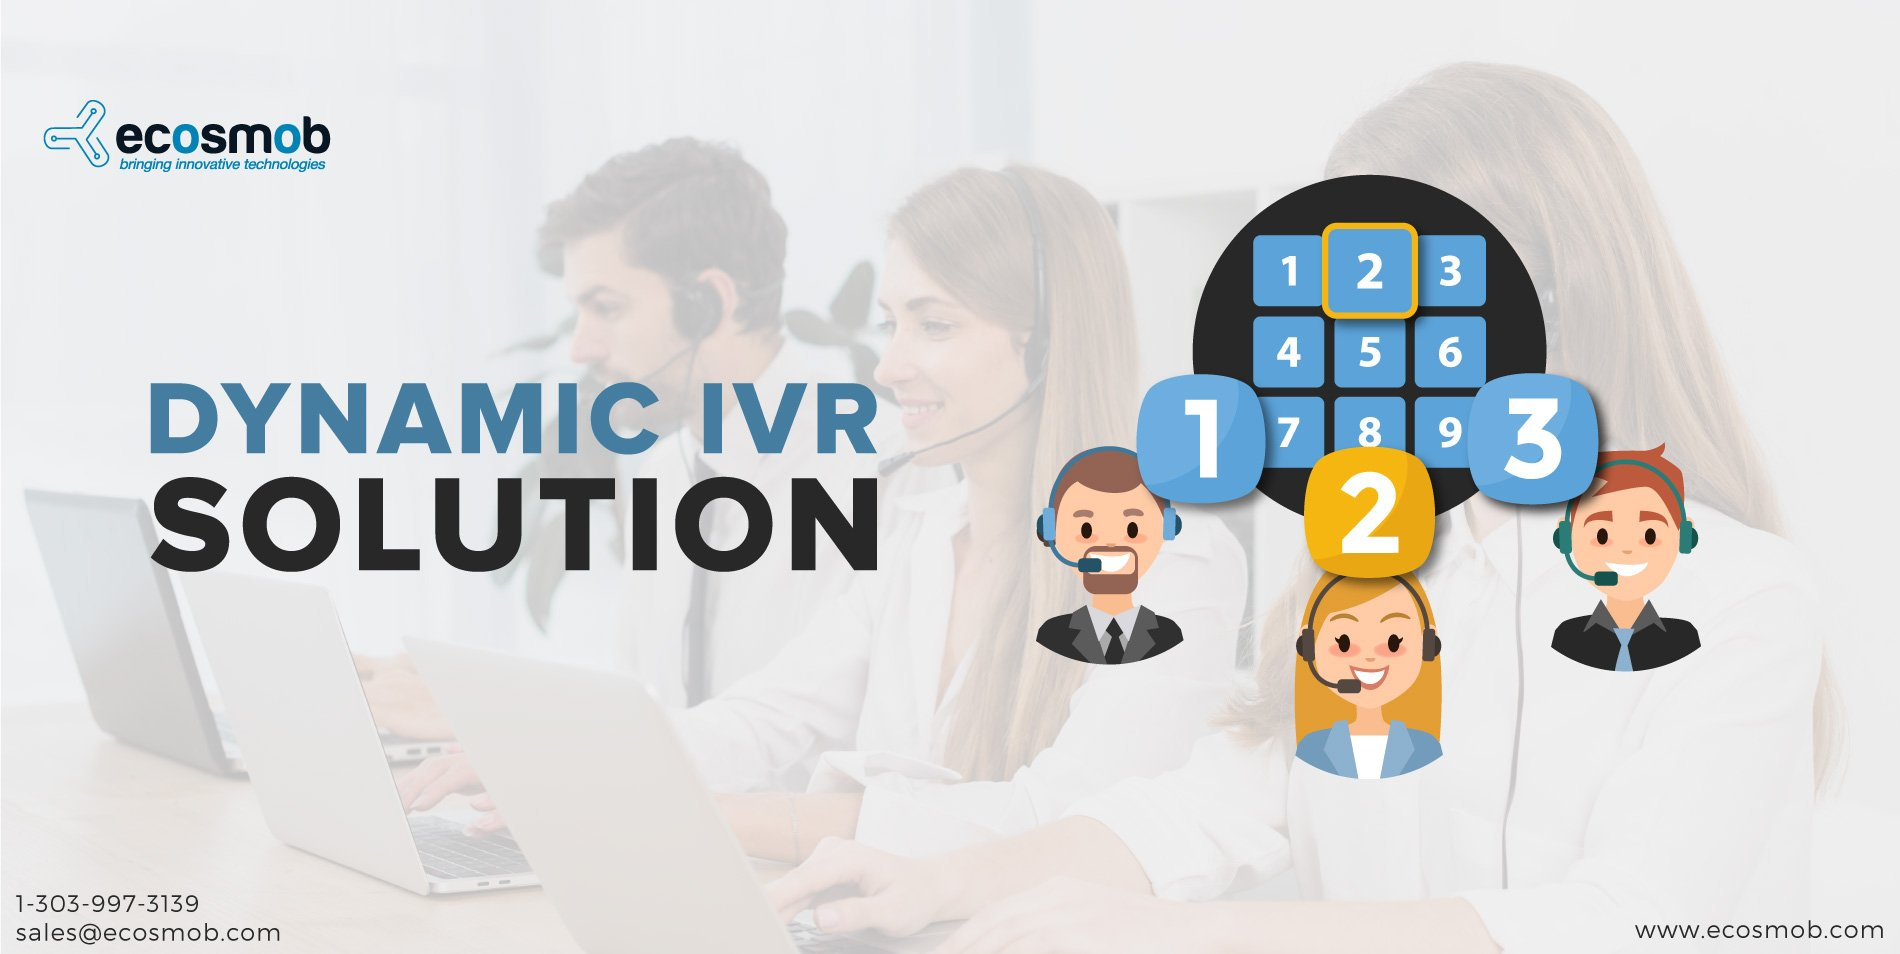 Why IVR solutions for Insurance industries? - Ecosmob